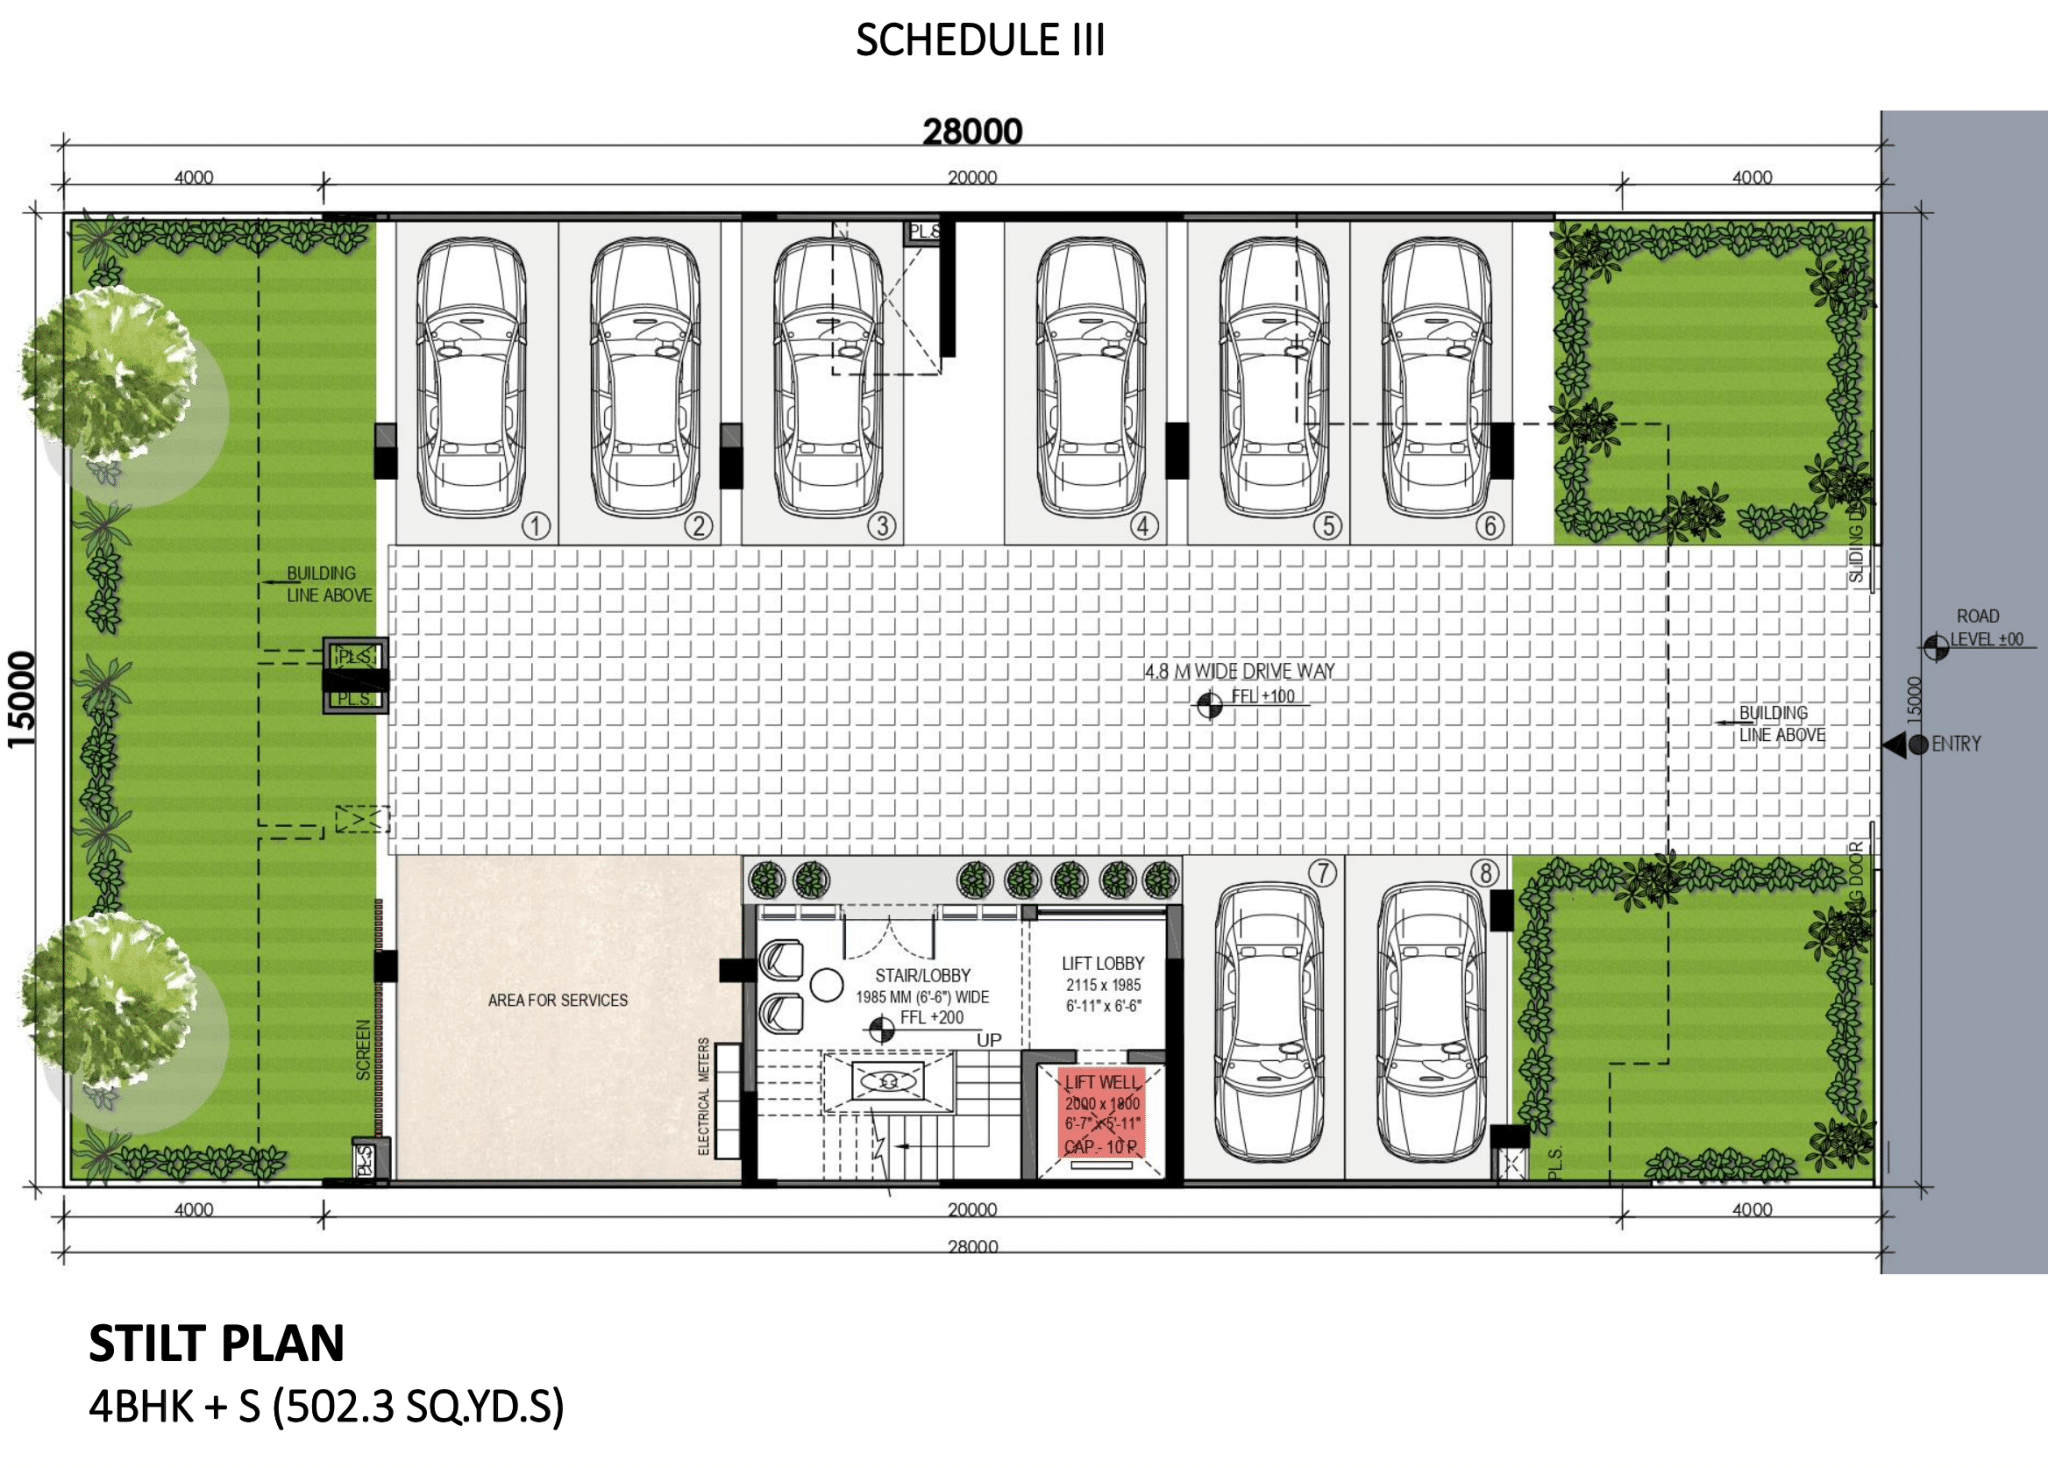 DLF Phase 3 Stilt Floor Plan 4BHK + S (502.3 SQ.YD.S) by DLF